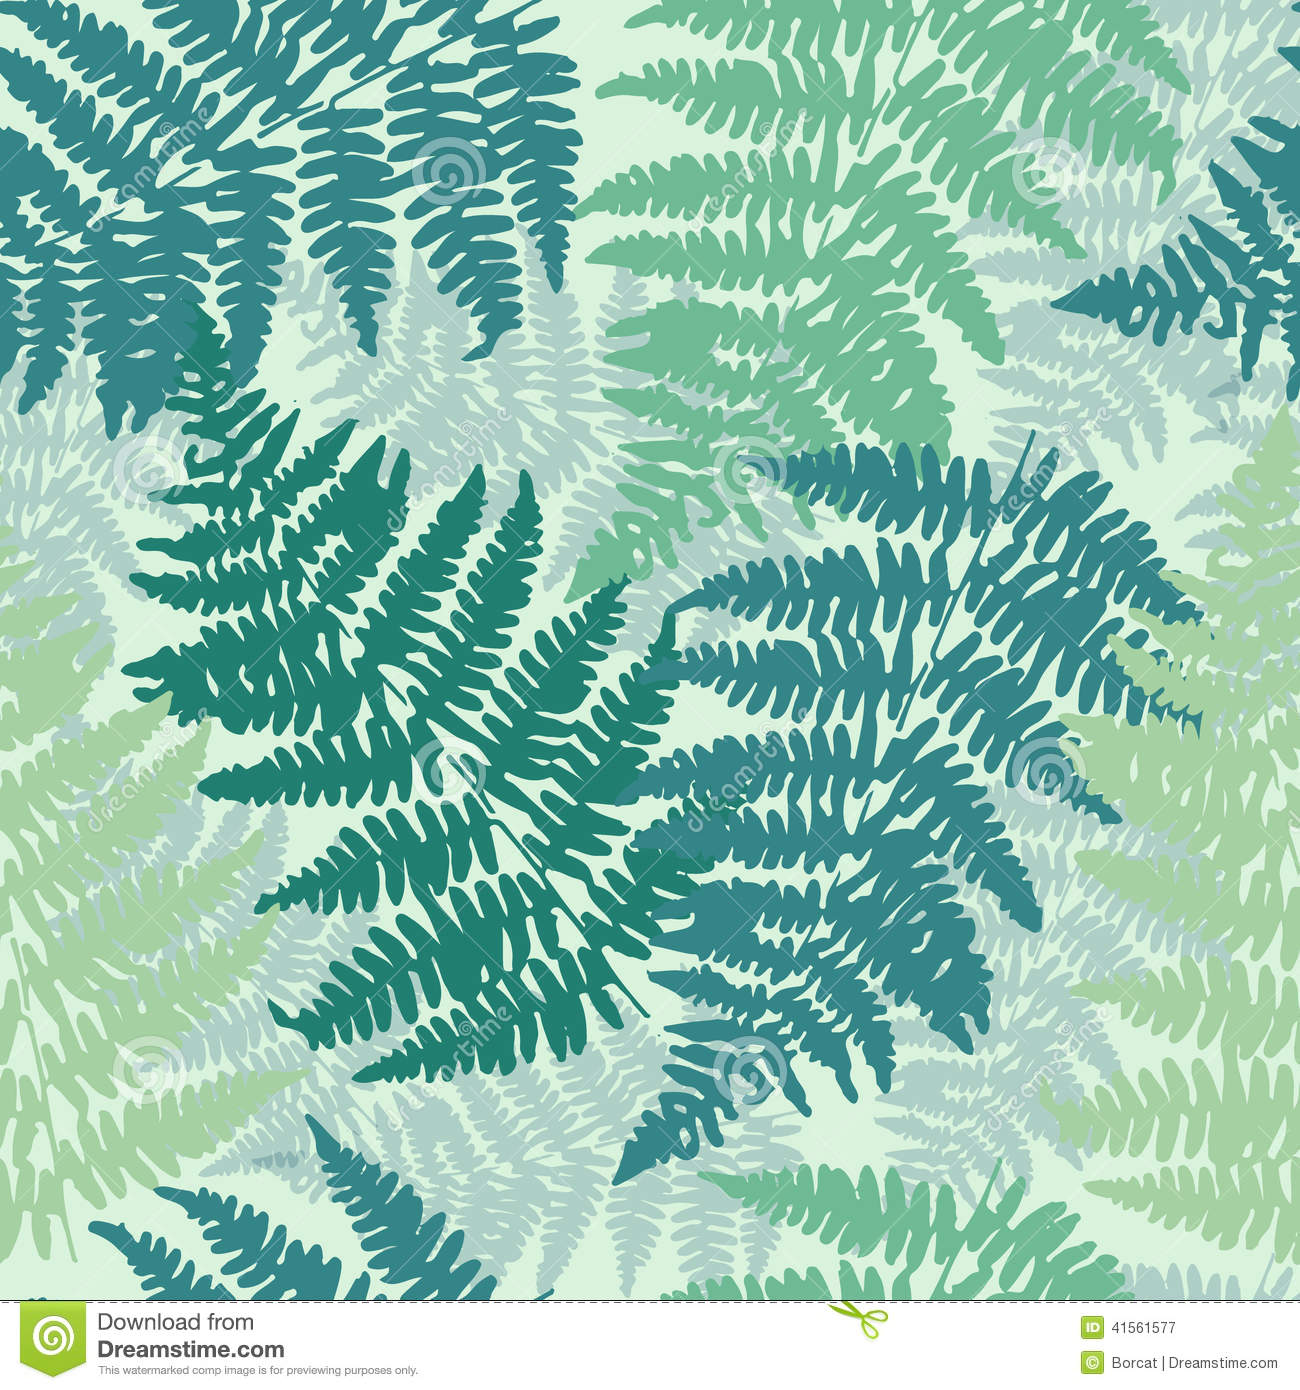 Seamless, Repeating Fern Pattern Background Stock